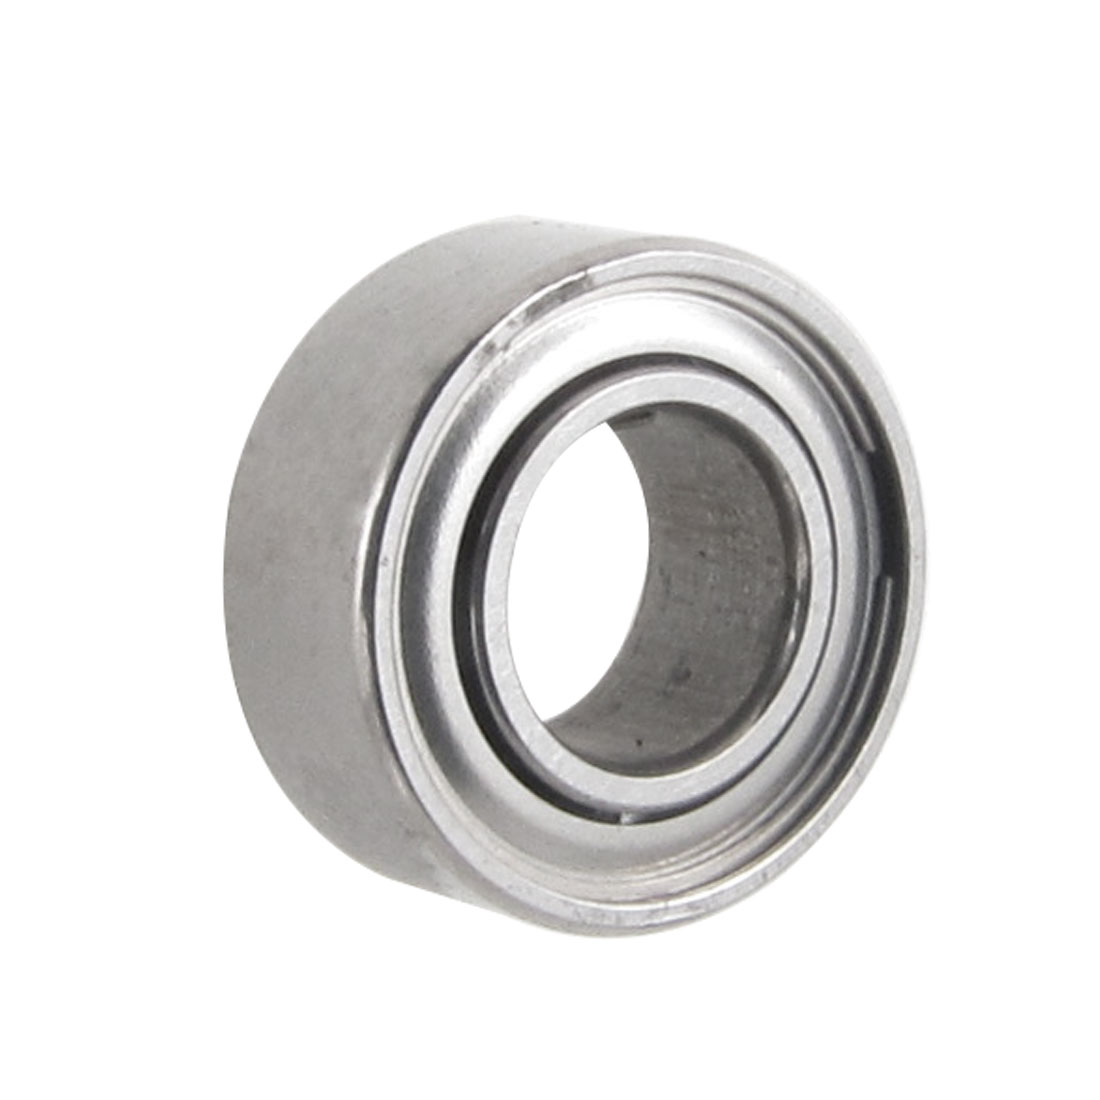 5mm x 10mm x 4mm Silver Tone Metal Sealed Deep Groove Radial Ball Bearing